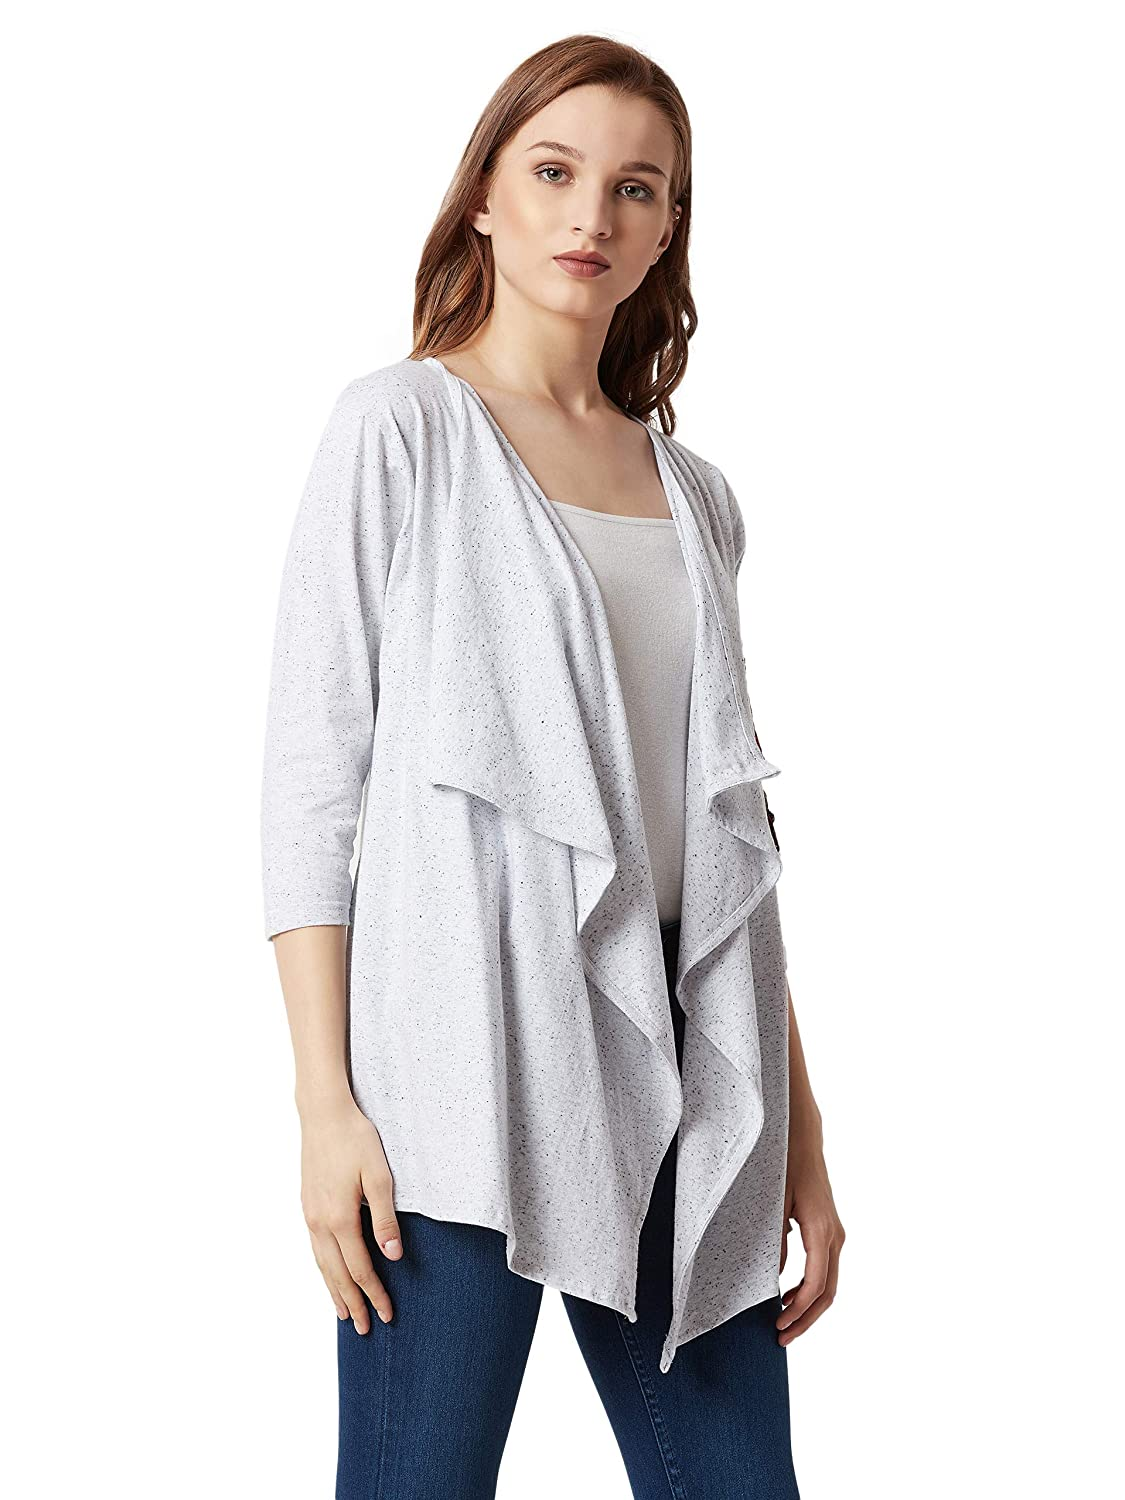 b391f1a903c Miss Chase Women's Grey Cotton Asymmetrical Floral Shrug: Amazon.in:  Clothing & Accessories